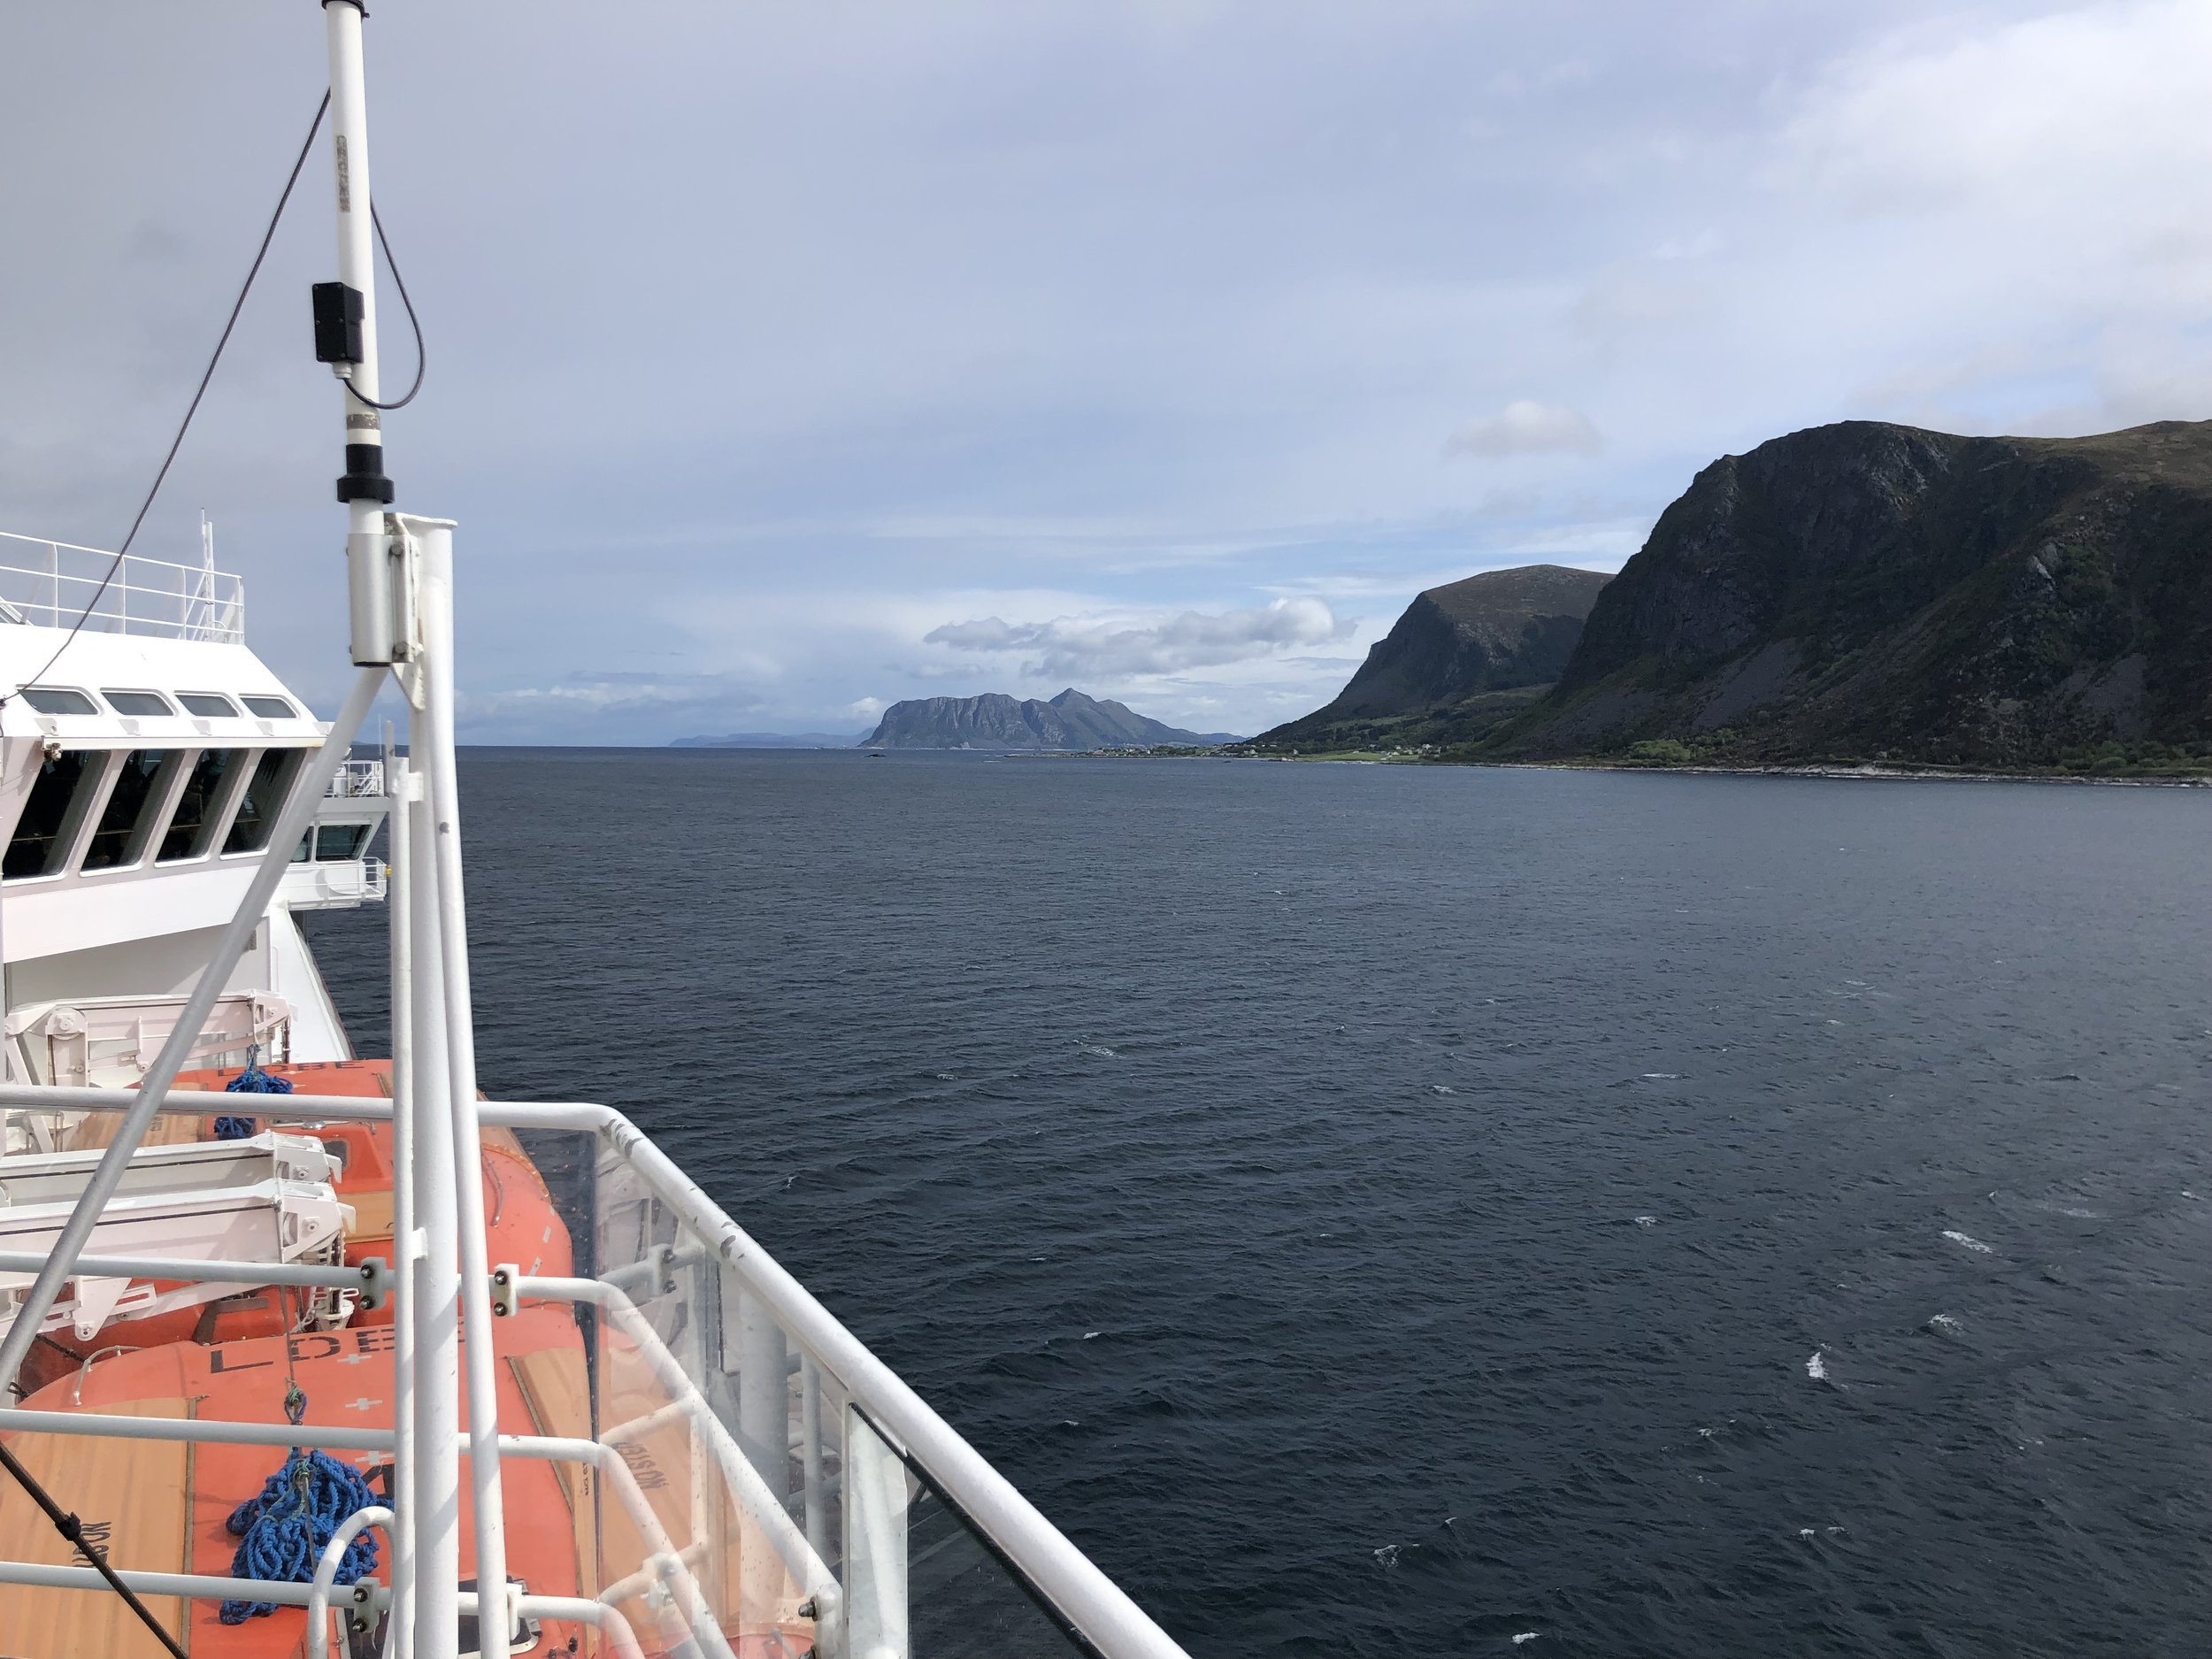 The route the ferry took followed the rugged Norwegian coastline north with a few stops at small fishing villages along the way.